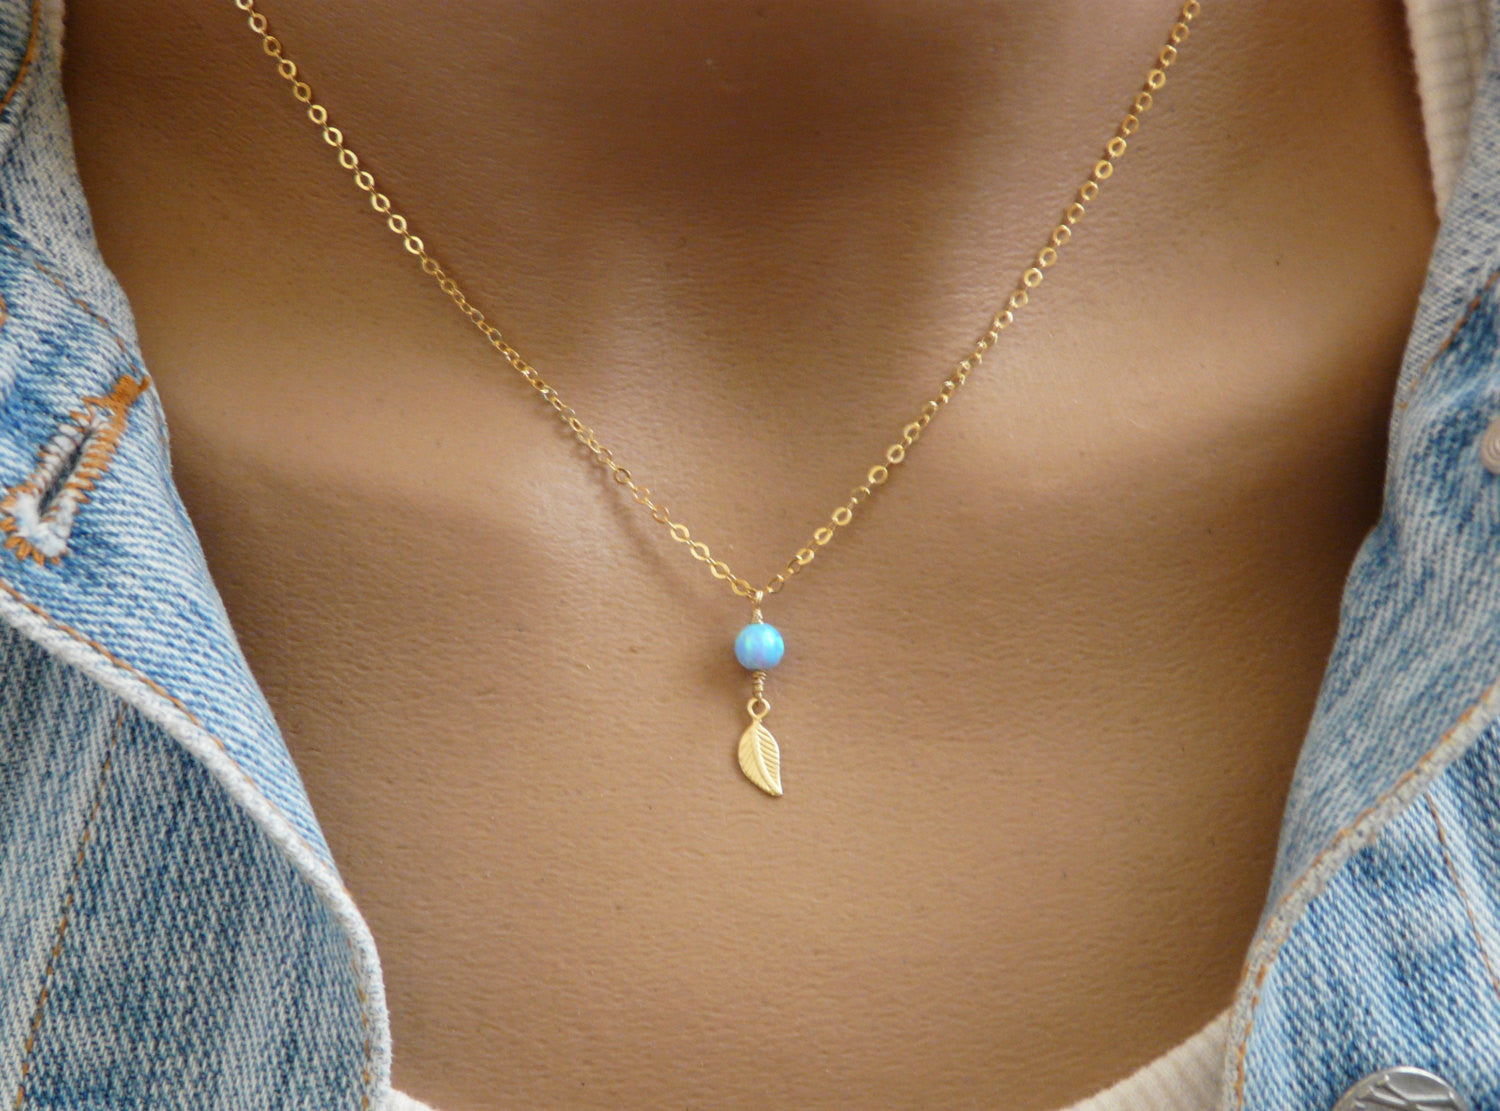 Leaf opal necklace - OpaLandJewelry